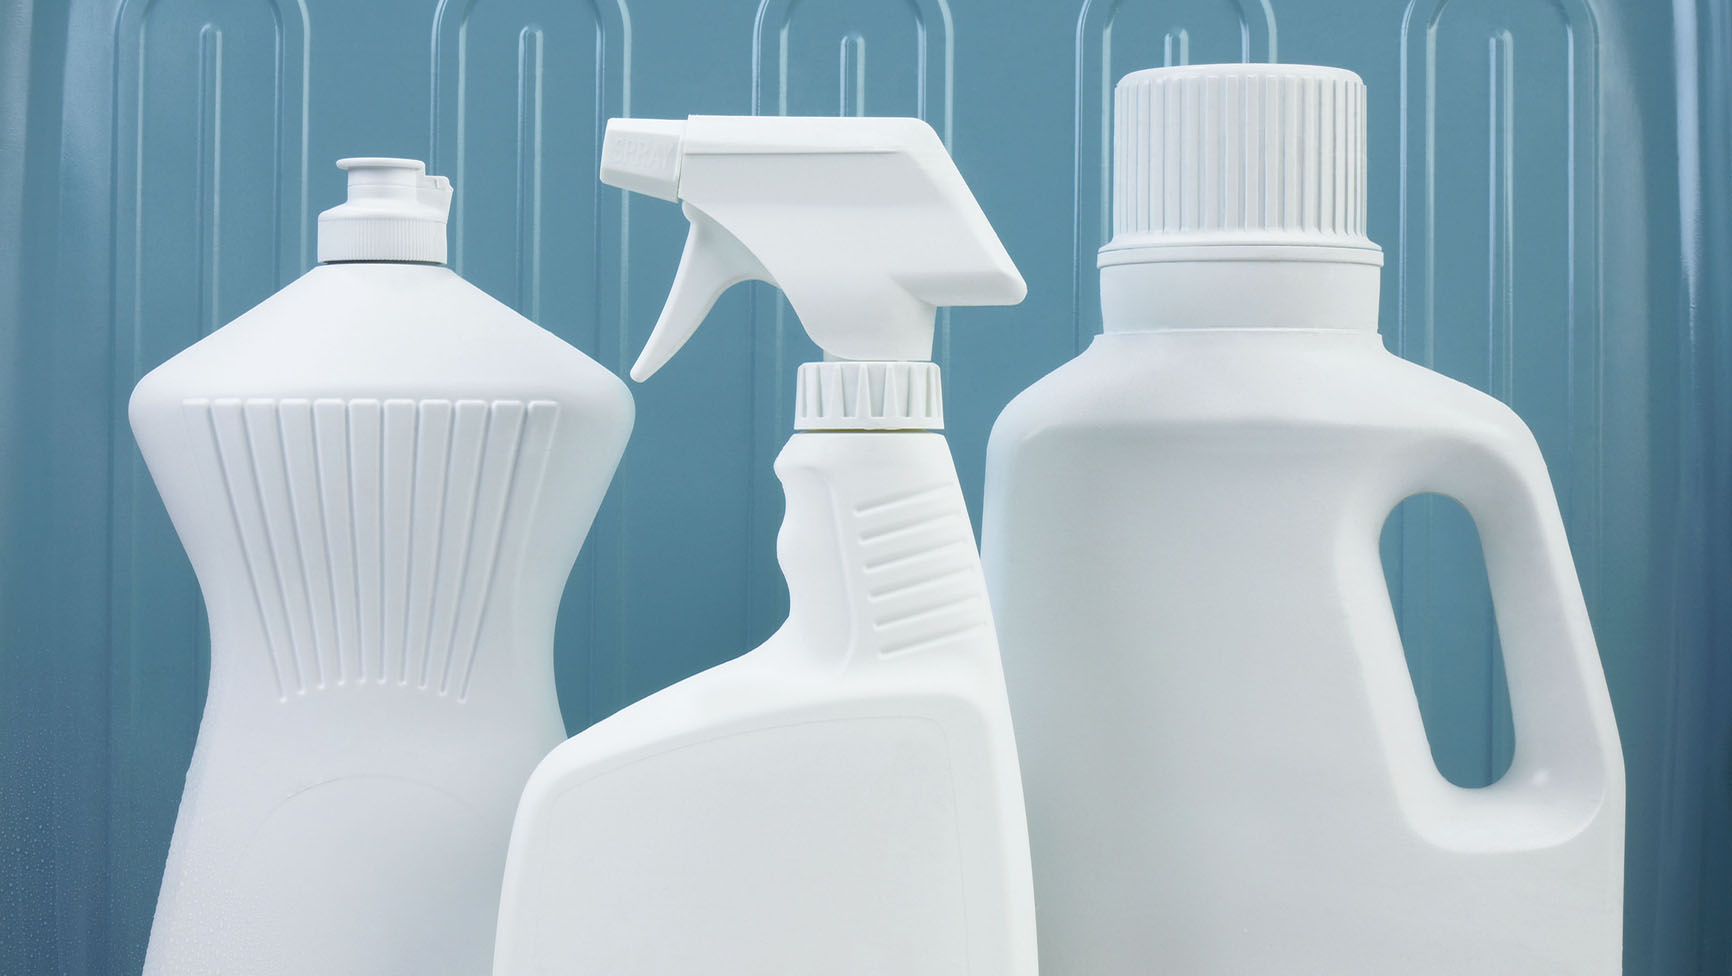 Toxins in cleaning supplies